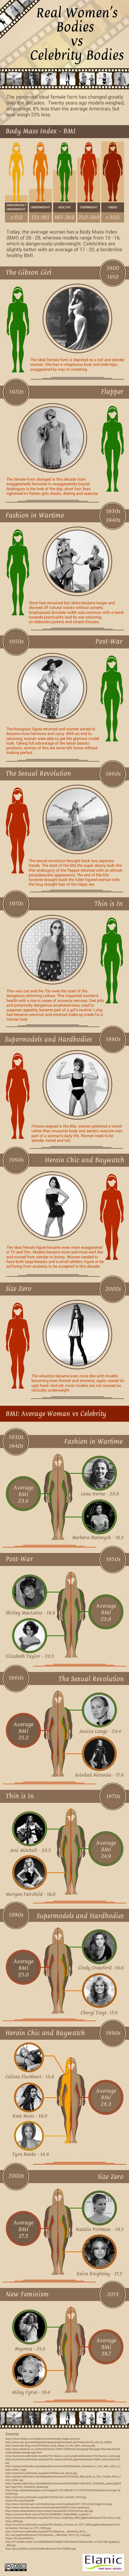 Infographic: How The Ideal Female Body Evolved Over Time - DesignTAXI.com